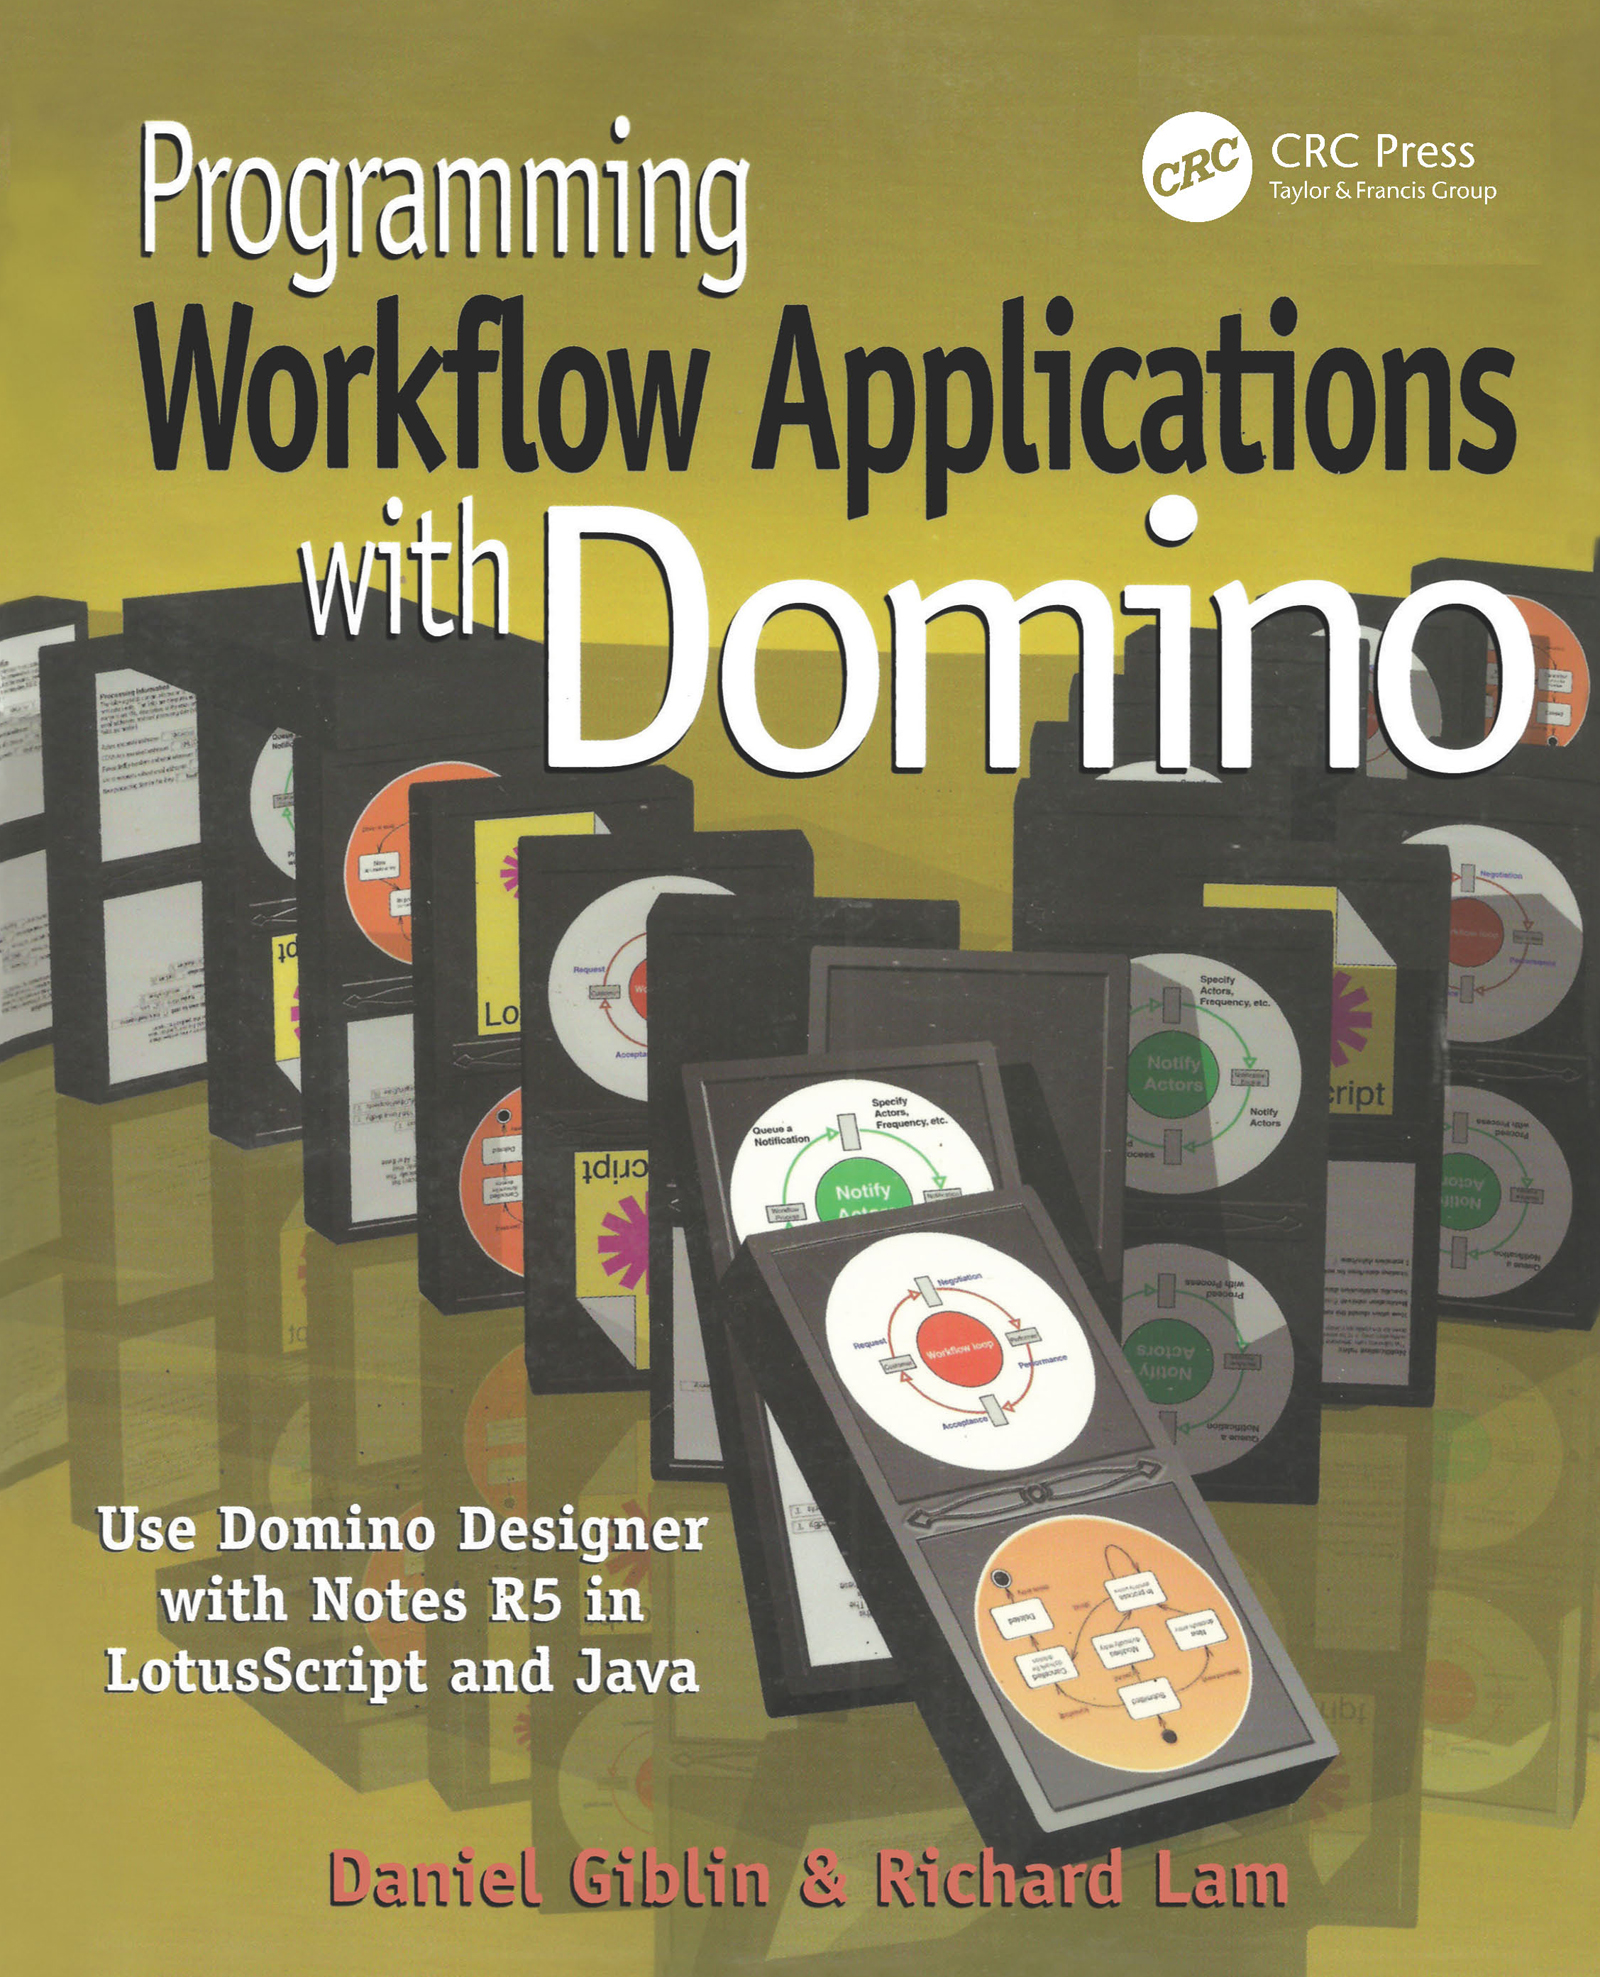 Programming Workflow Applications with Domino